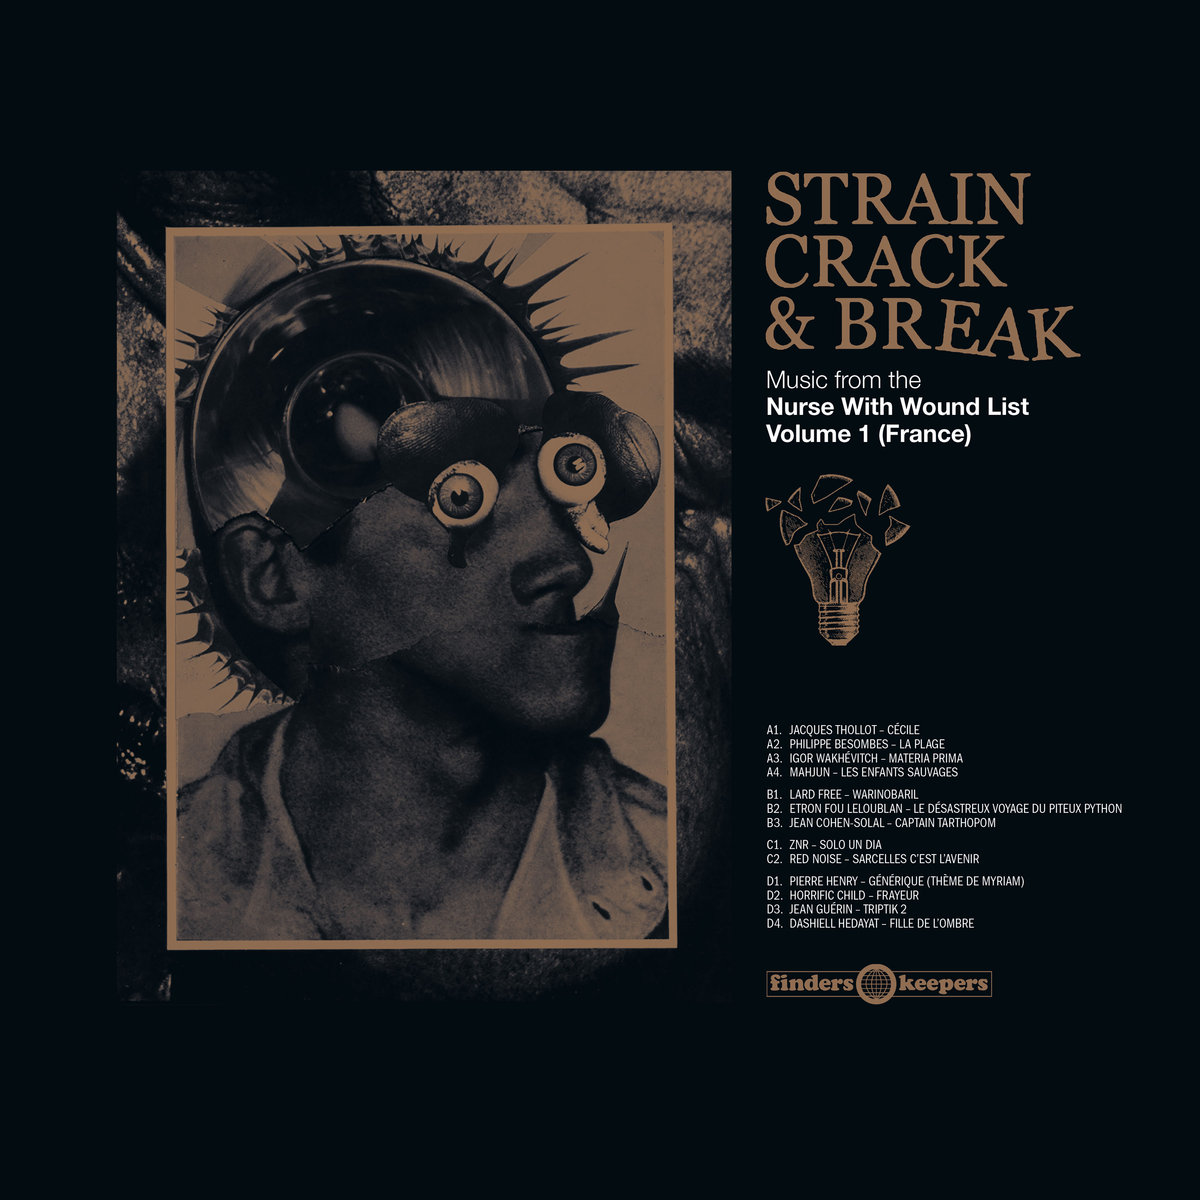 STRAIN, CRACK & BREAK. NURSE WITH WOUND LIST VOL.1